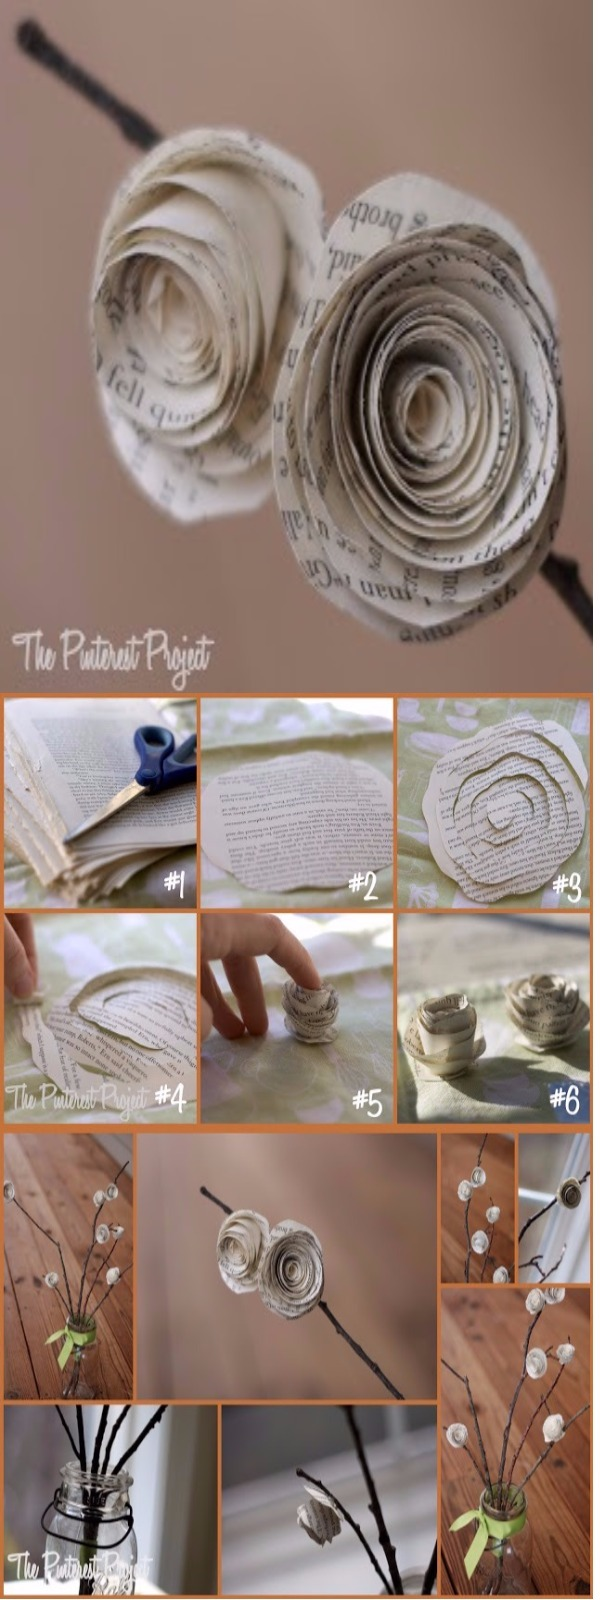 paper flower Upcycling Projects To Make Your Home Gorgeous